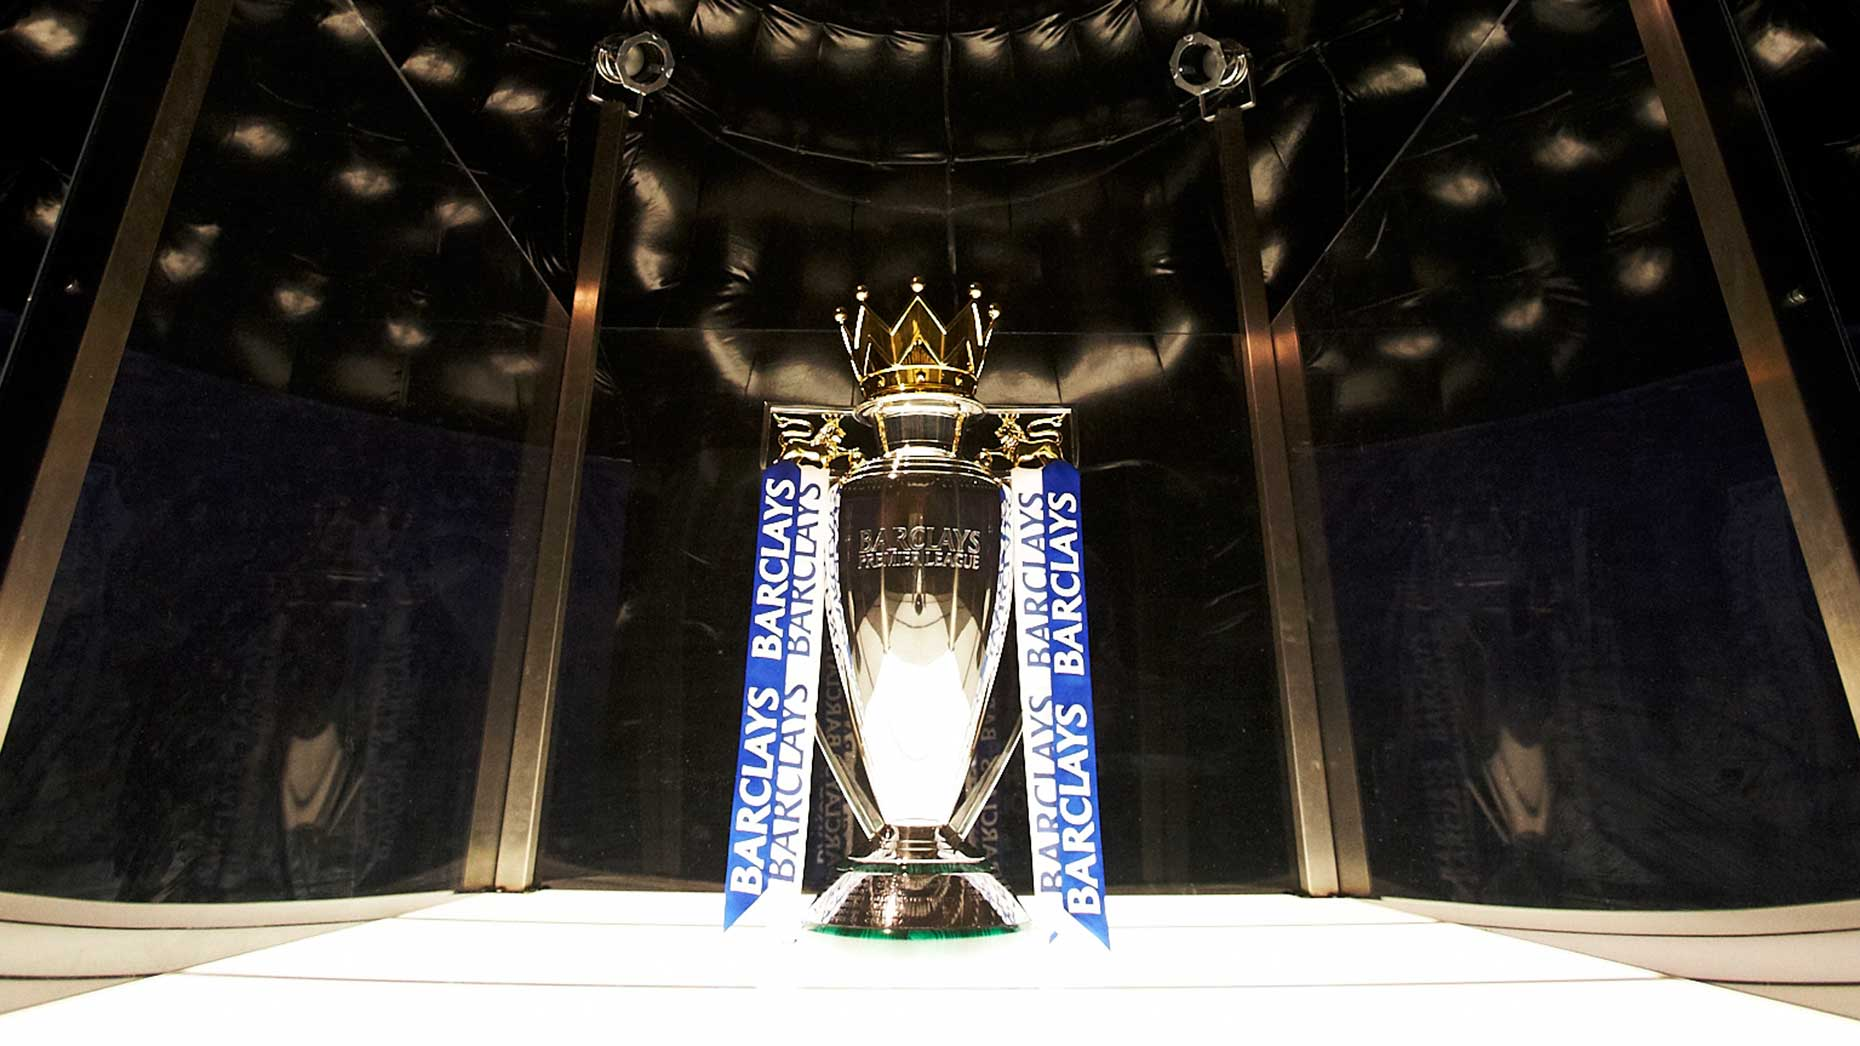 Barclays premier league trophy to visit lincoln for The barclay